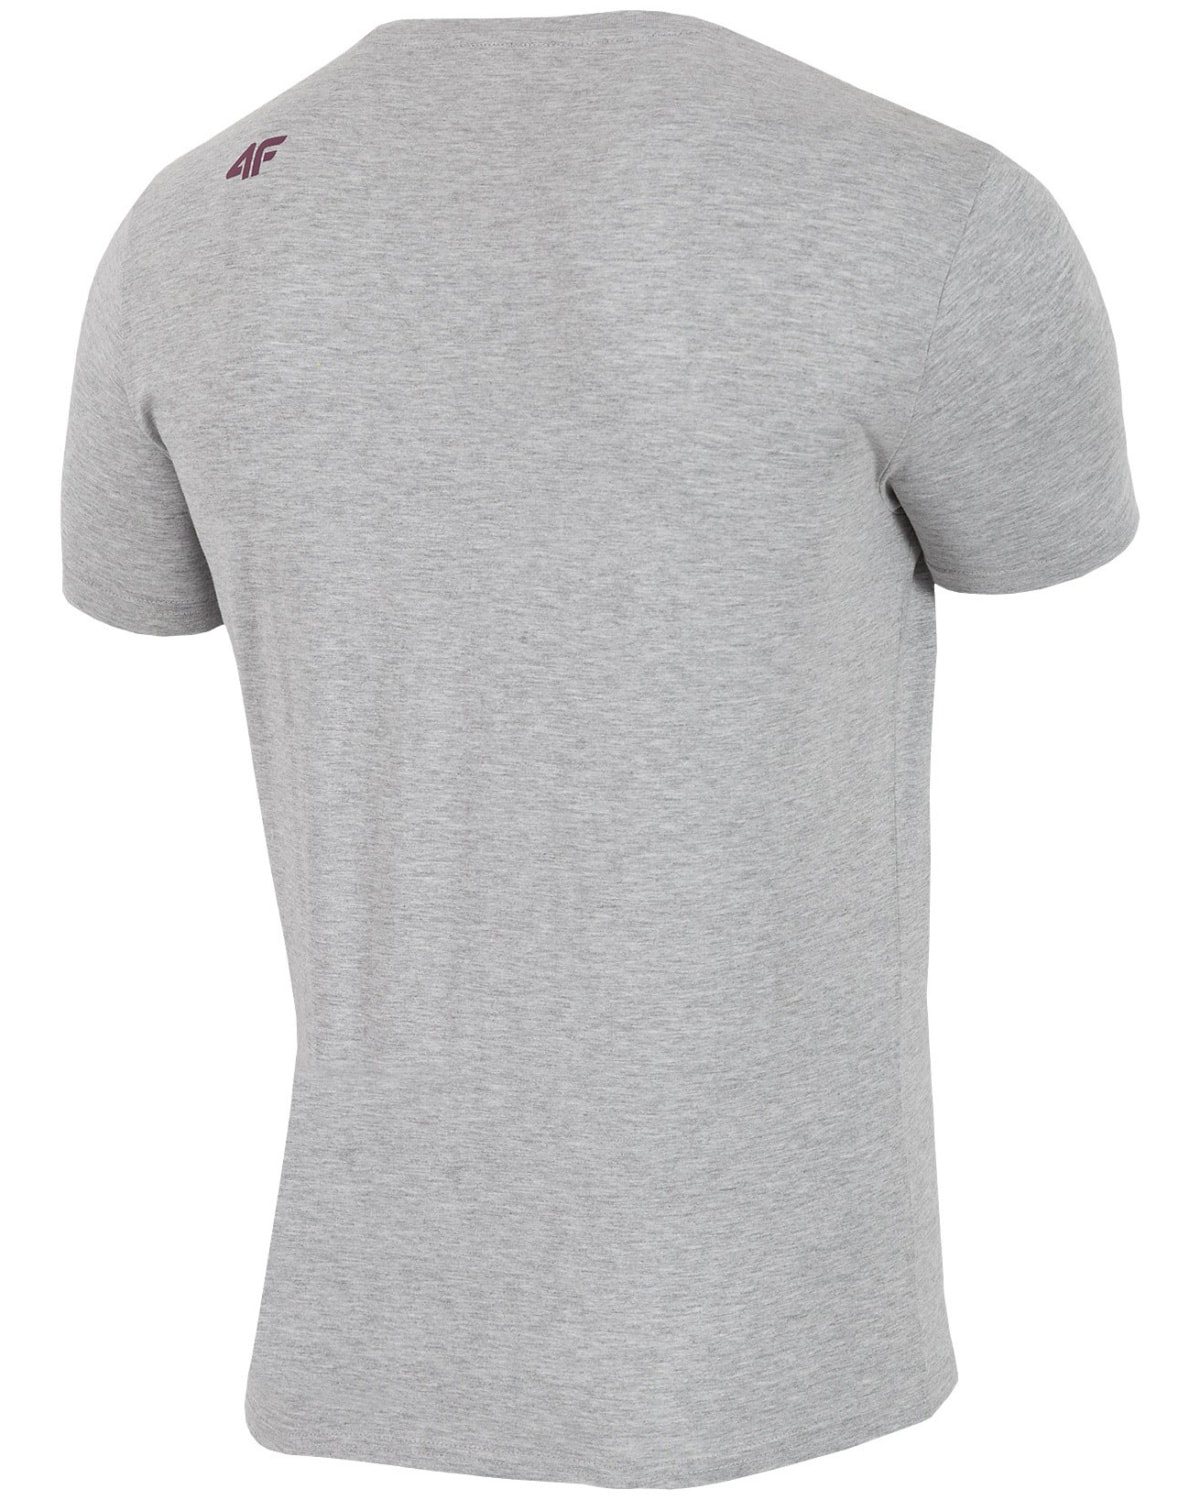 4F Man's T-Shirt – Light Grey Melange